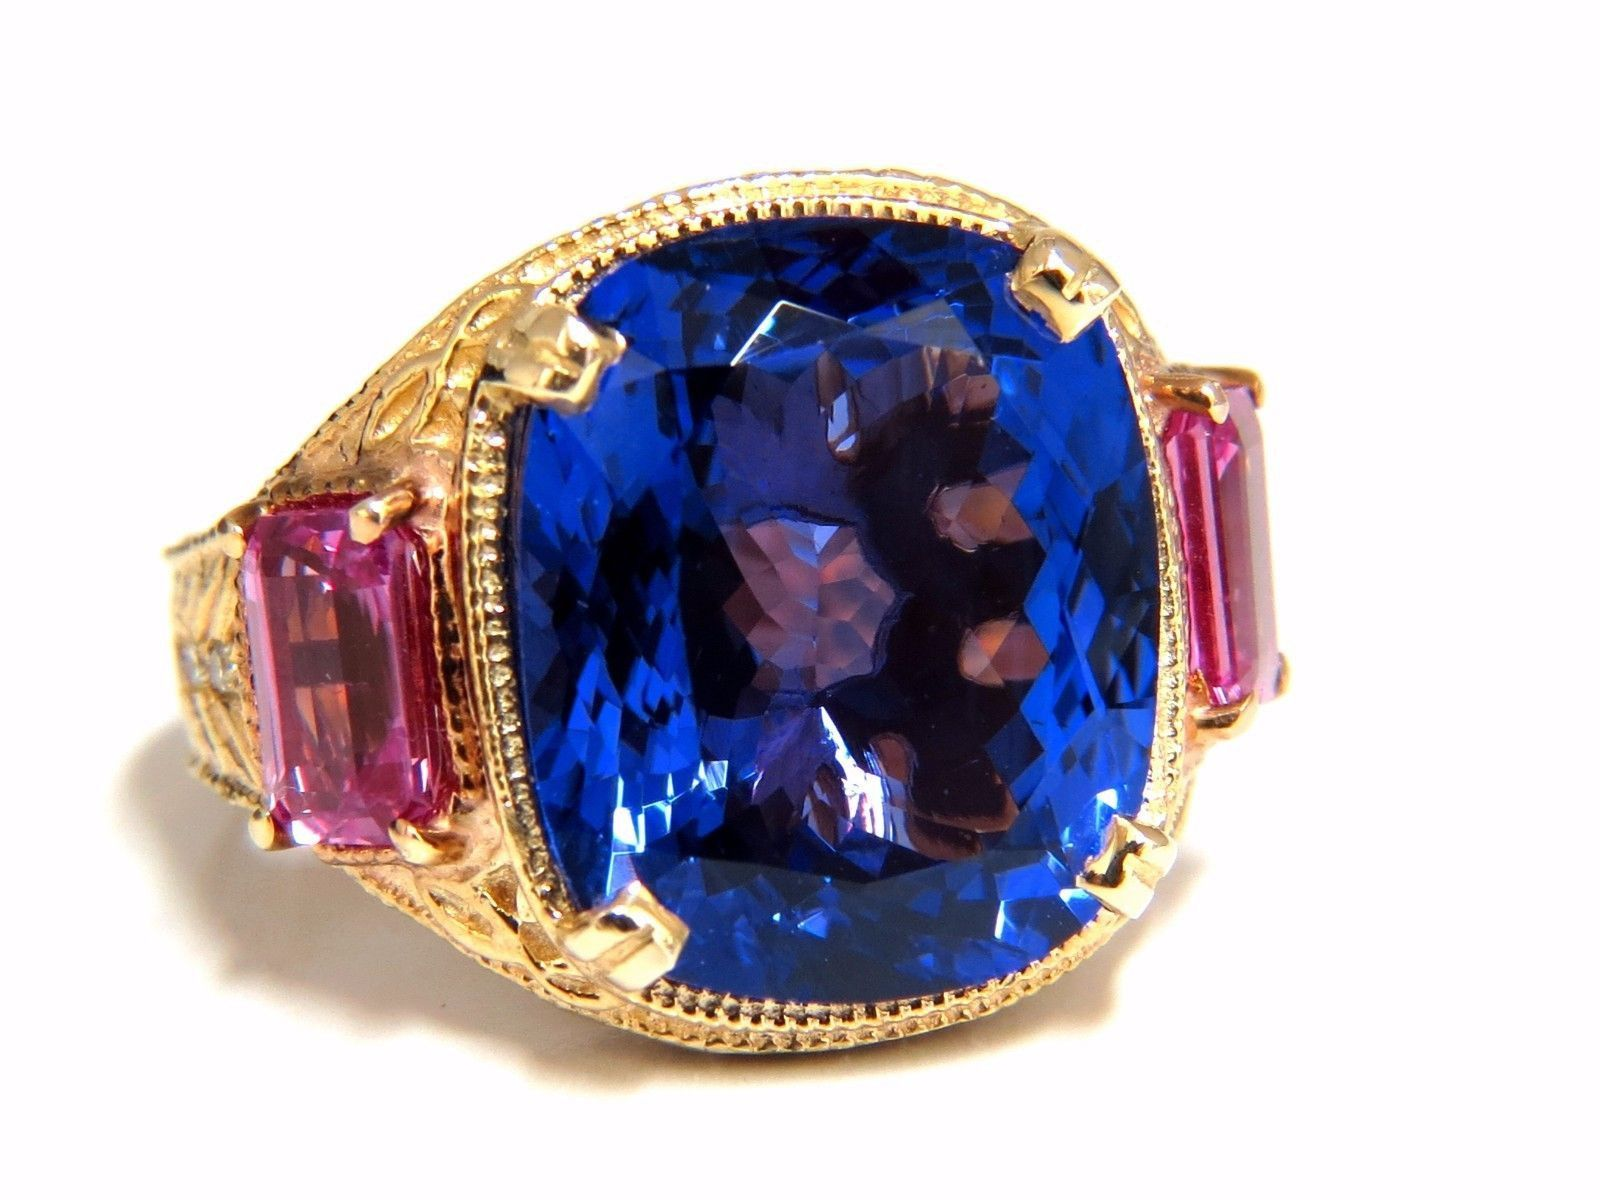 ring diamond gold fine gia jewelry white slanted pear certified tanzanite louisiana watch